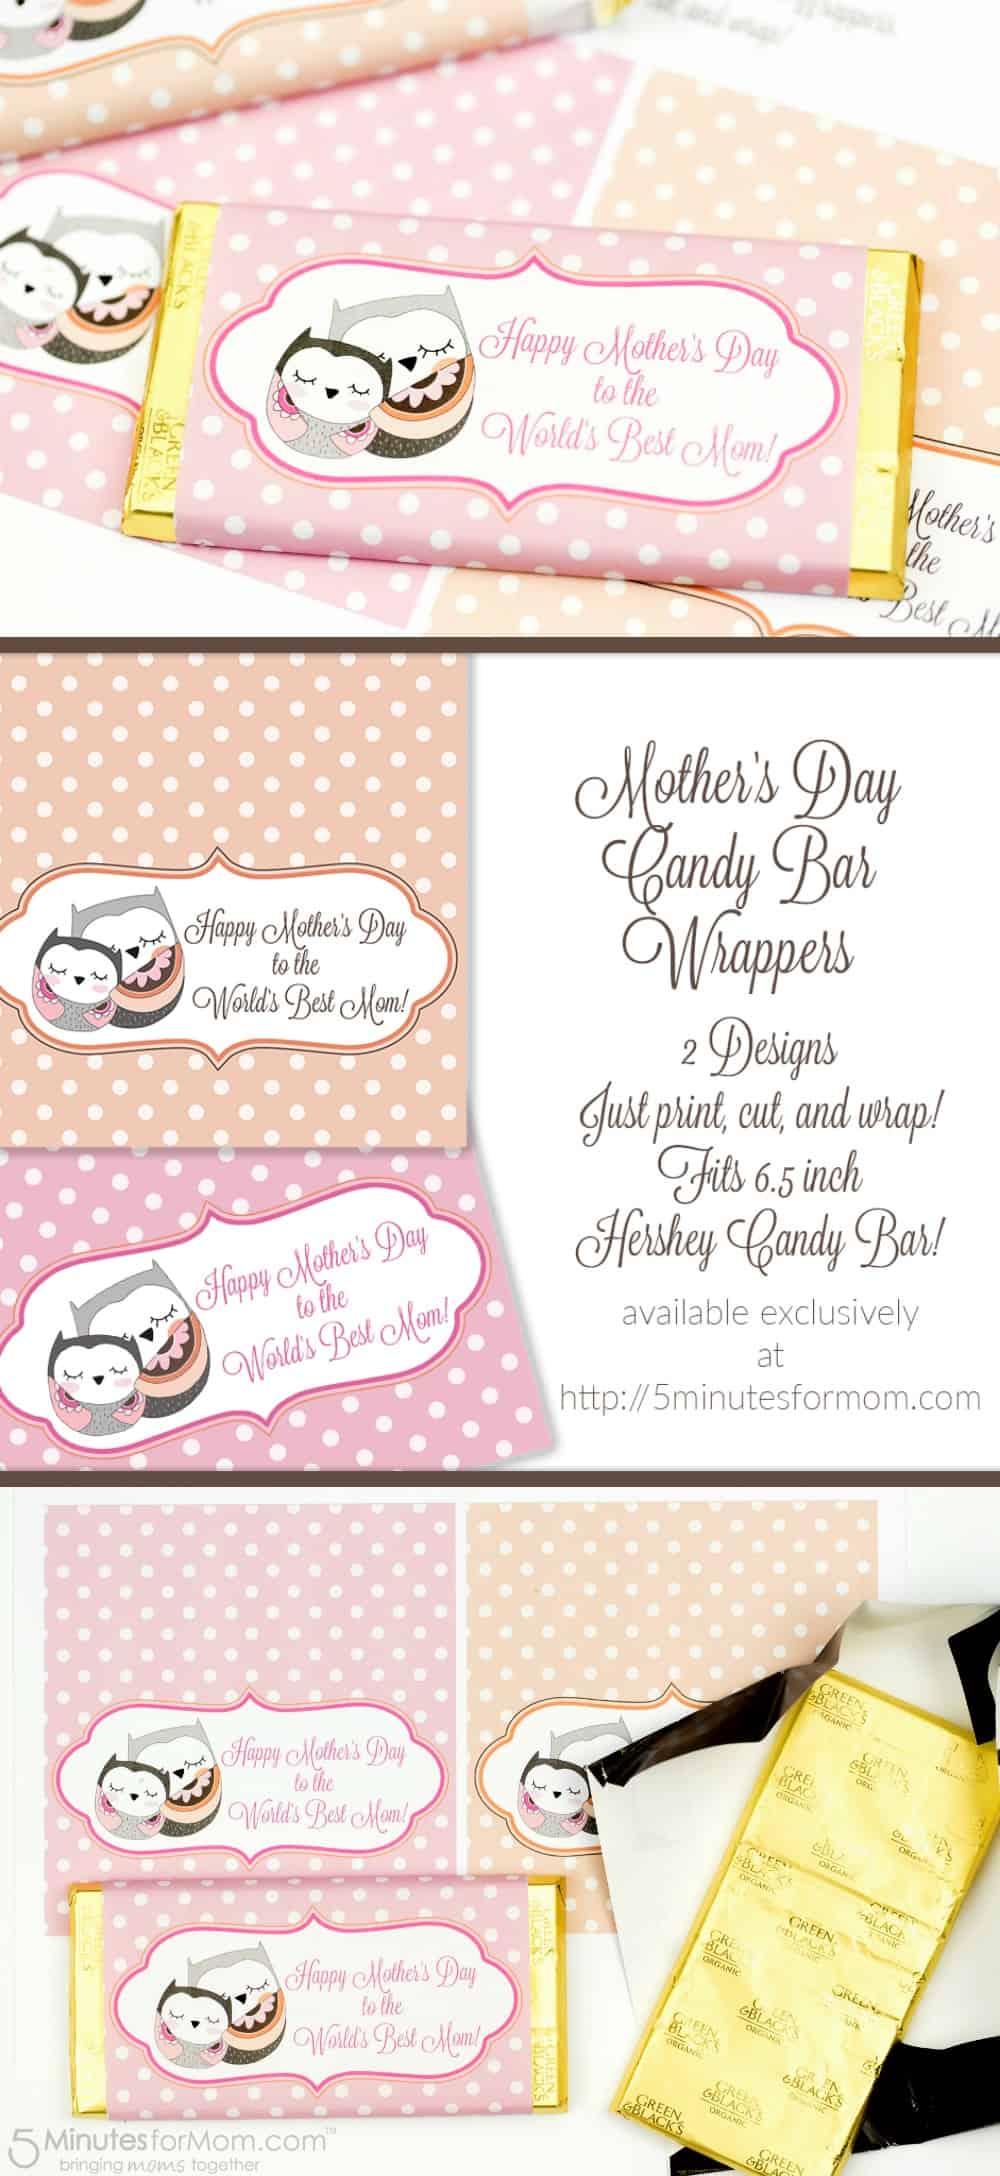 Mothers Day Candy Bar Wrappers Free Printable